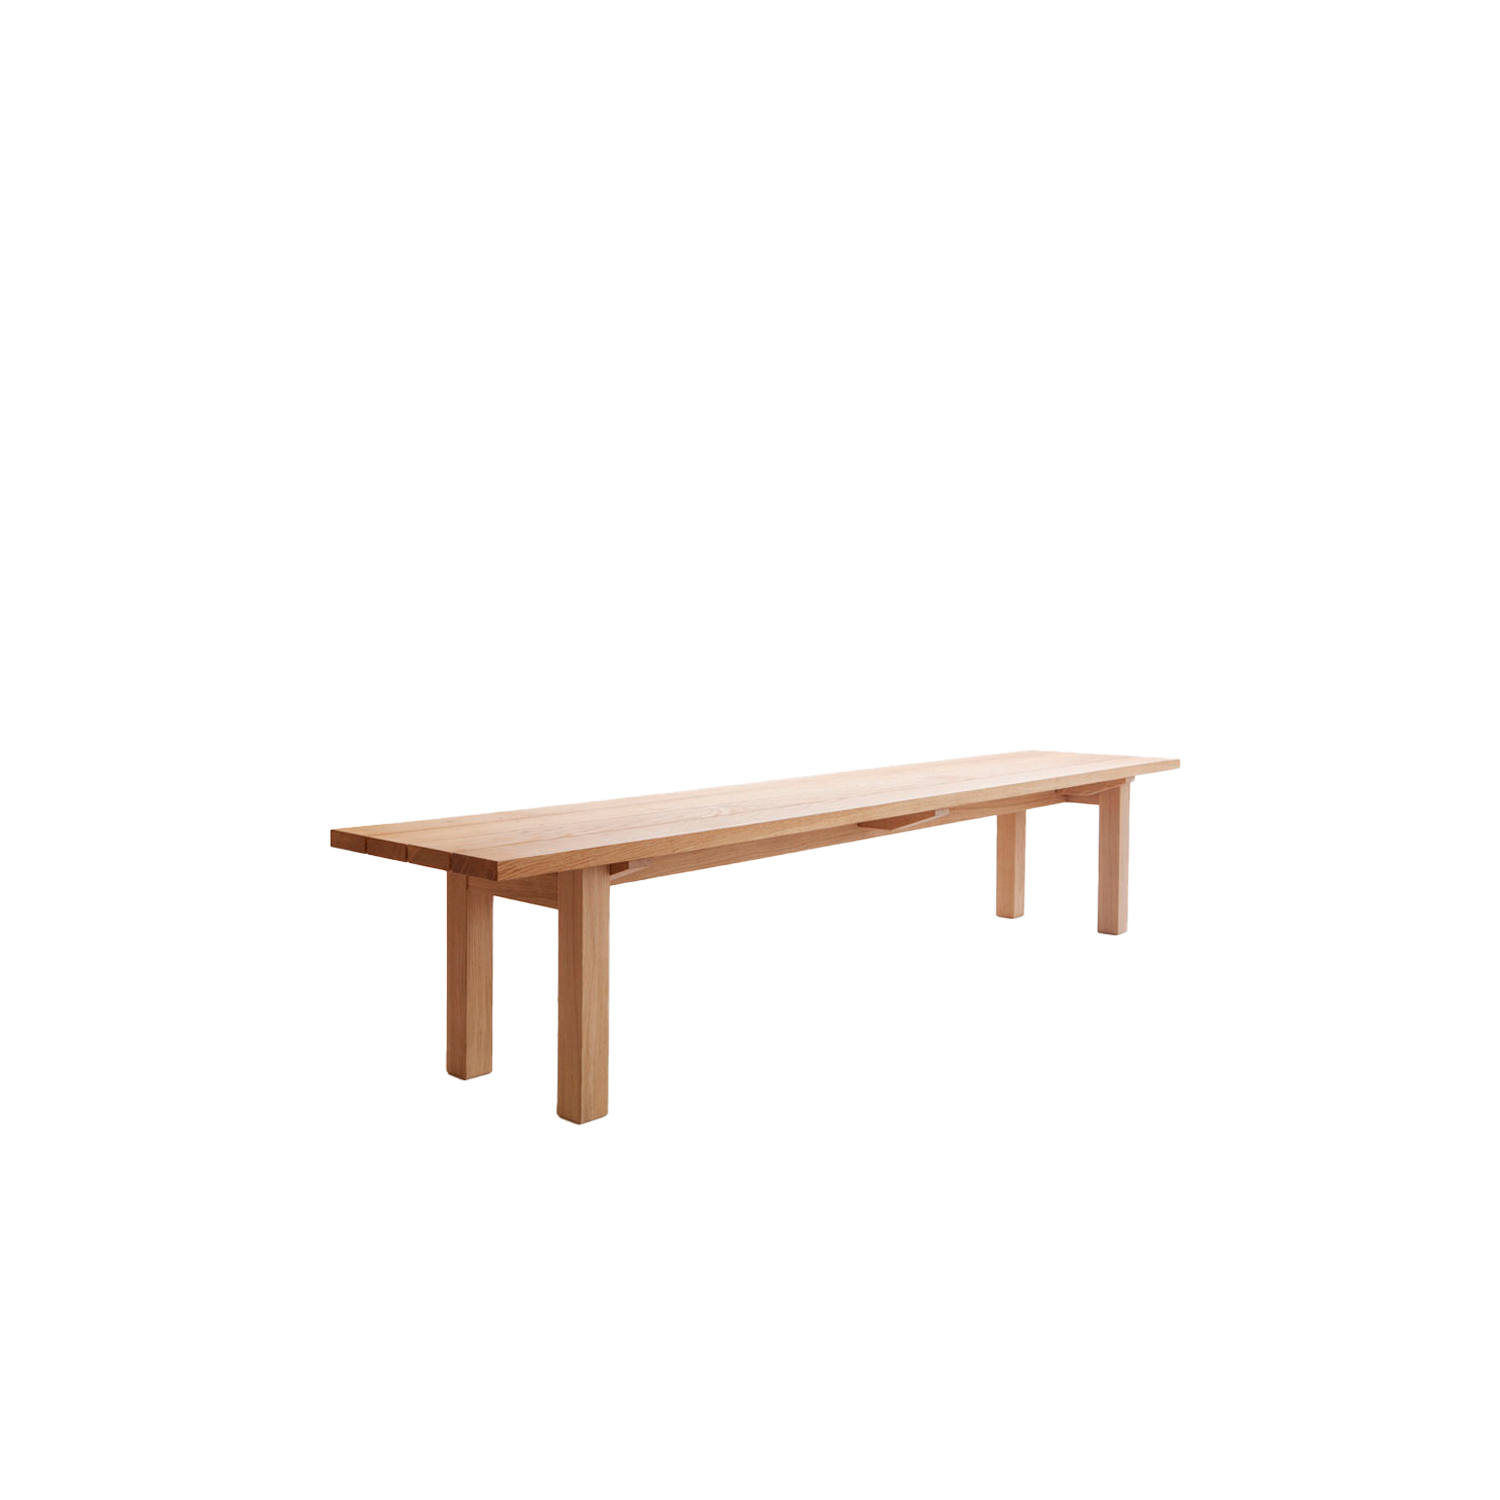 Arkipelago KVI10/KVI10T Bench - The Arkipelago series is designed to be used both indoors and outdoors.    The outdoor version (KVI10T) is only available in oak with an oiled finish and the top consists of planks. The indoor version (KVI10) is available in oak or ash with an oiled finish and the top is a solid seat or made of planks. This bench is available in two different lengths.  | Matter of Stuff